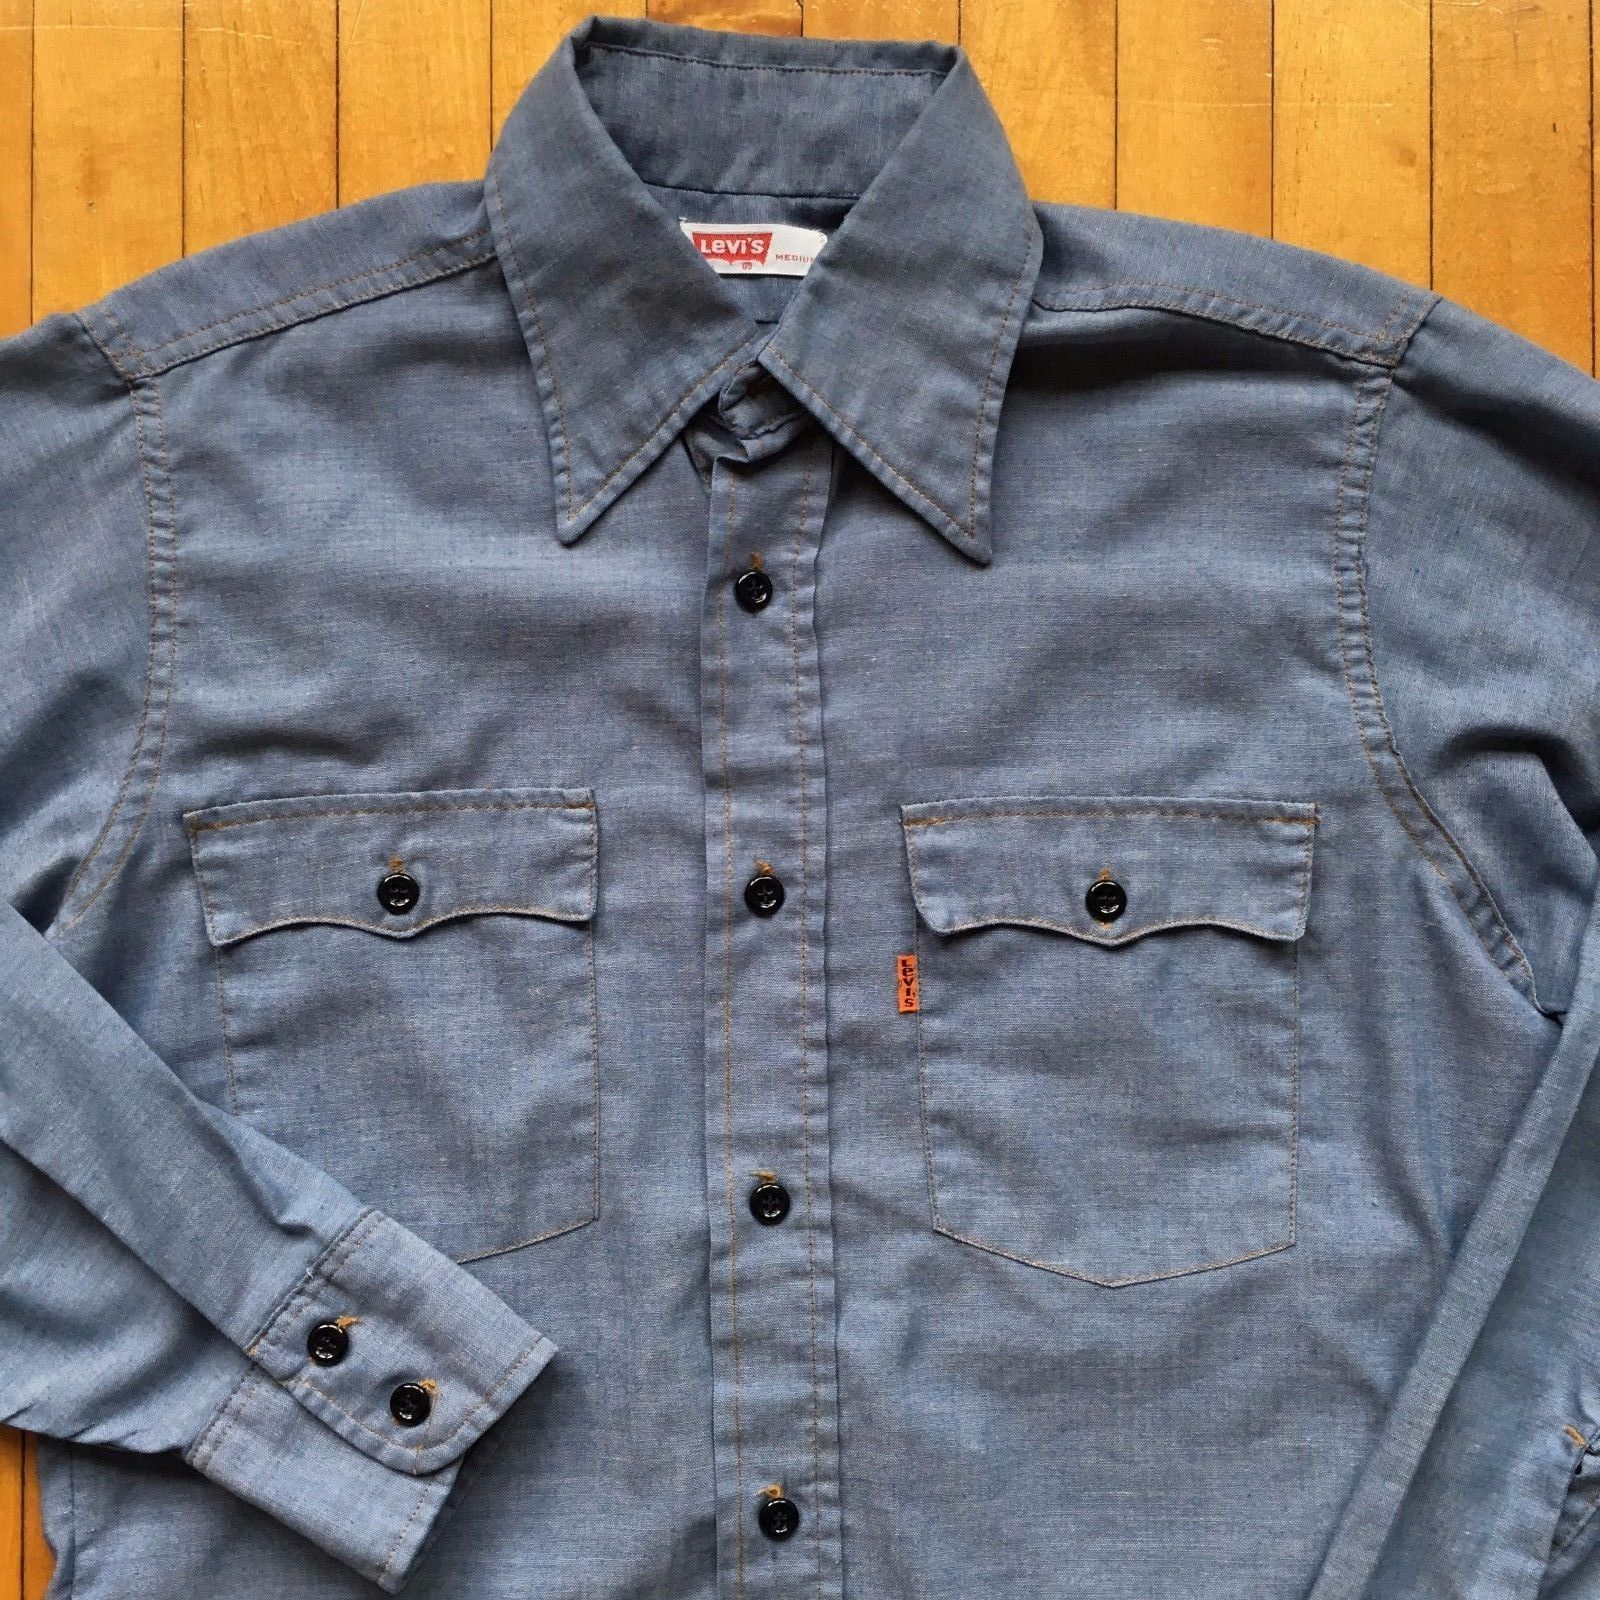 Blue chambray width pit to pit 21 shoulder widest